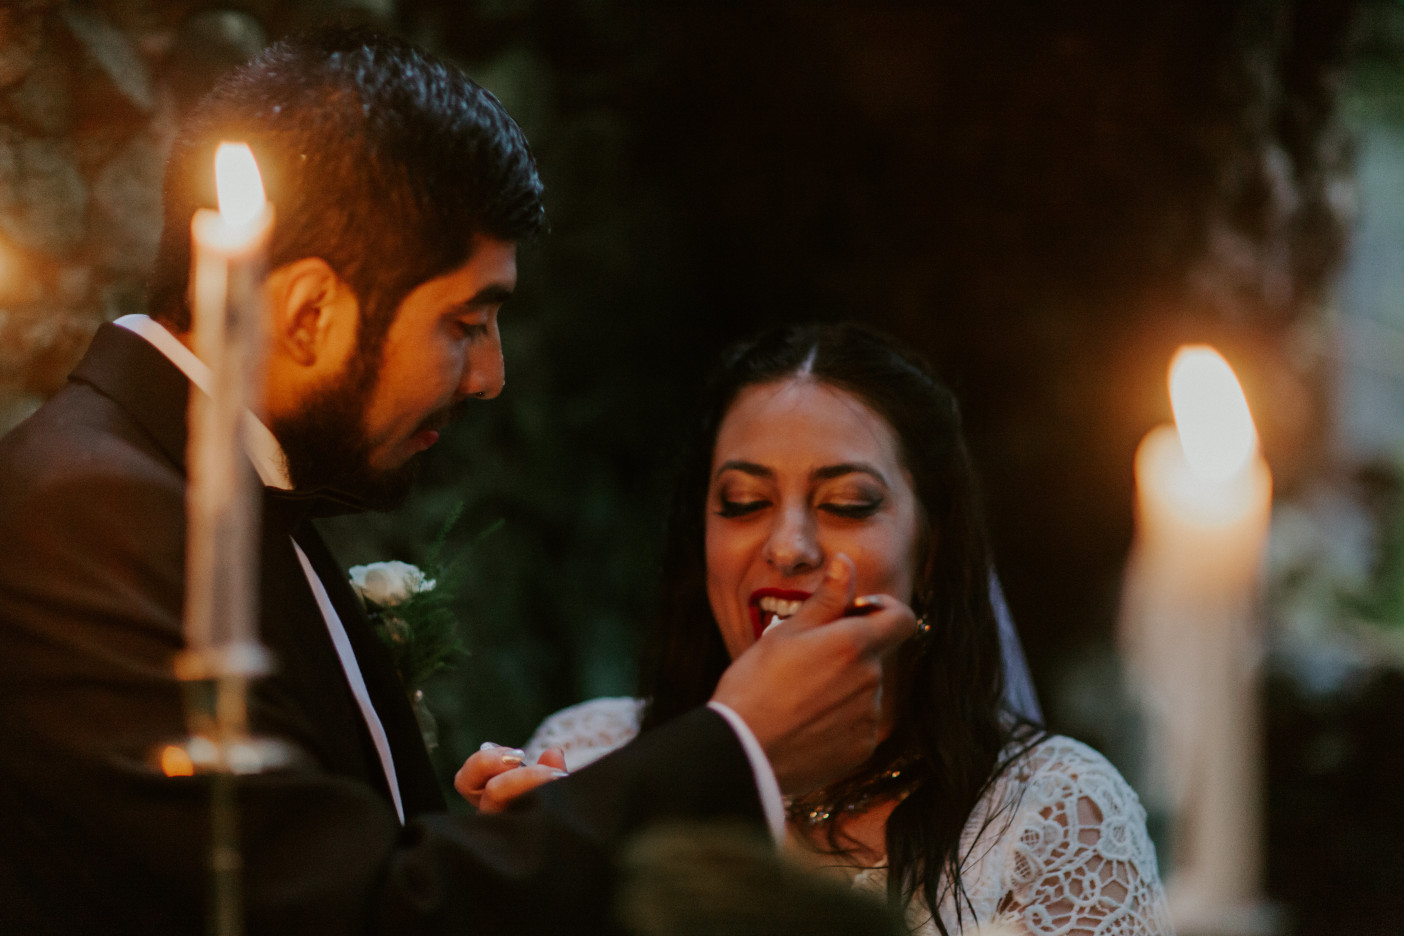 Sarah and Sam feed each other cake at Skamania House, Washington. Elopement photography in Portland Oregon by Sienna Plus Josh.